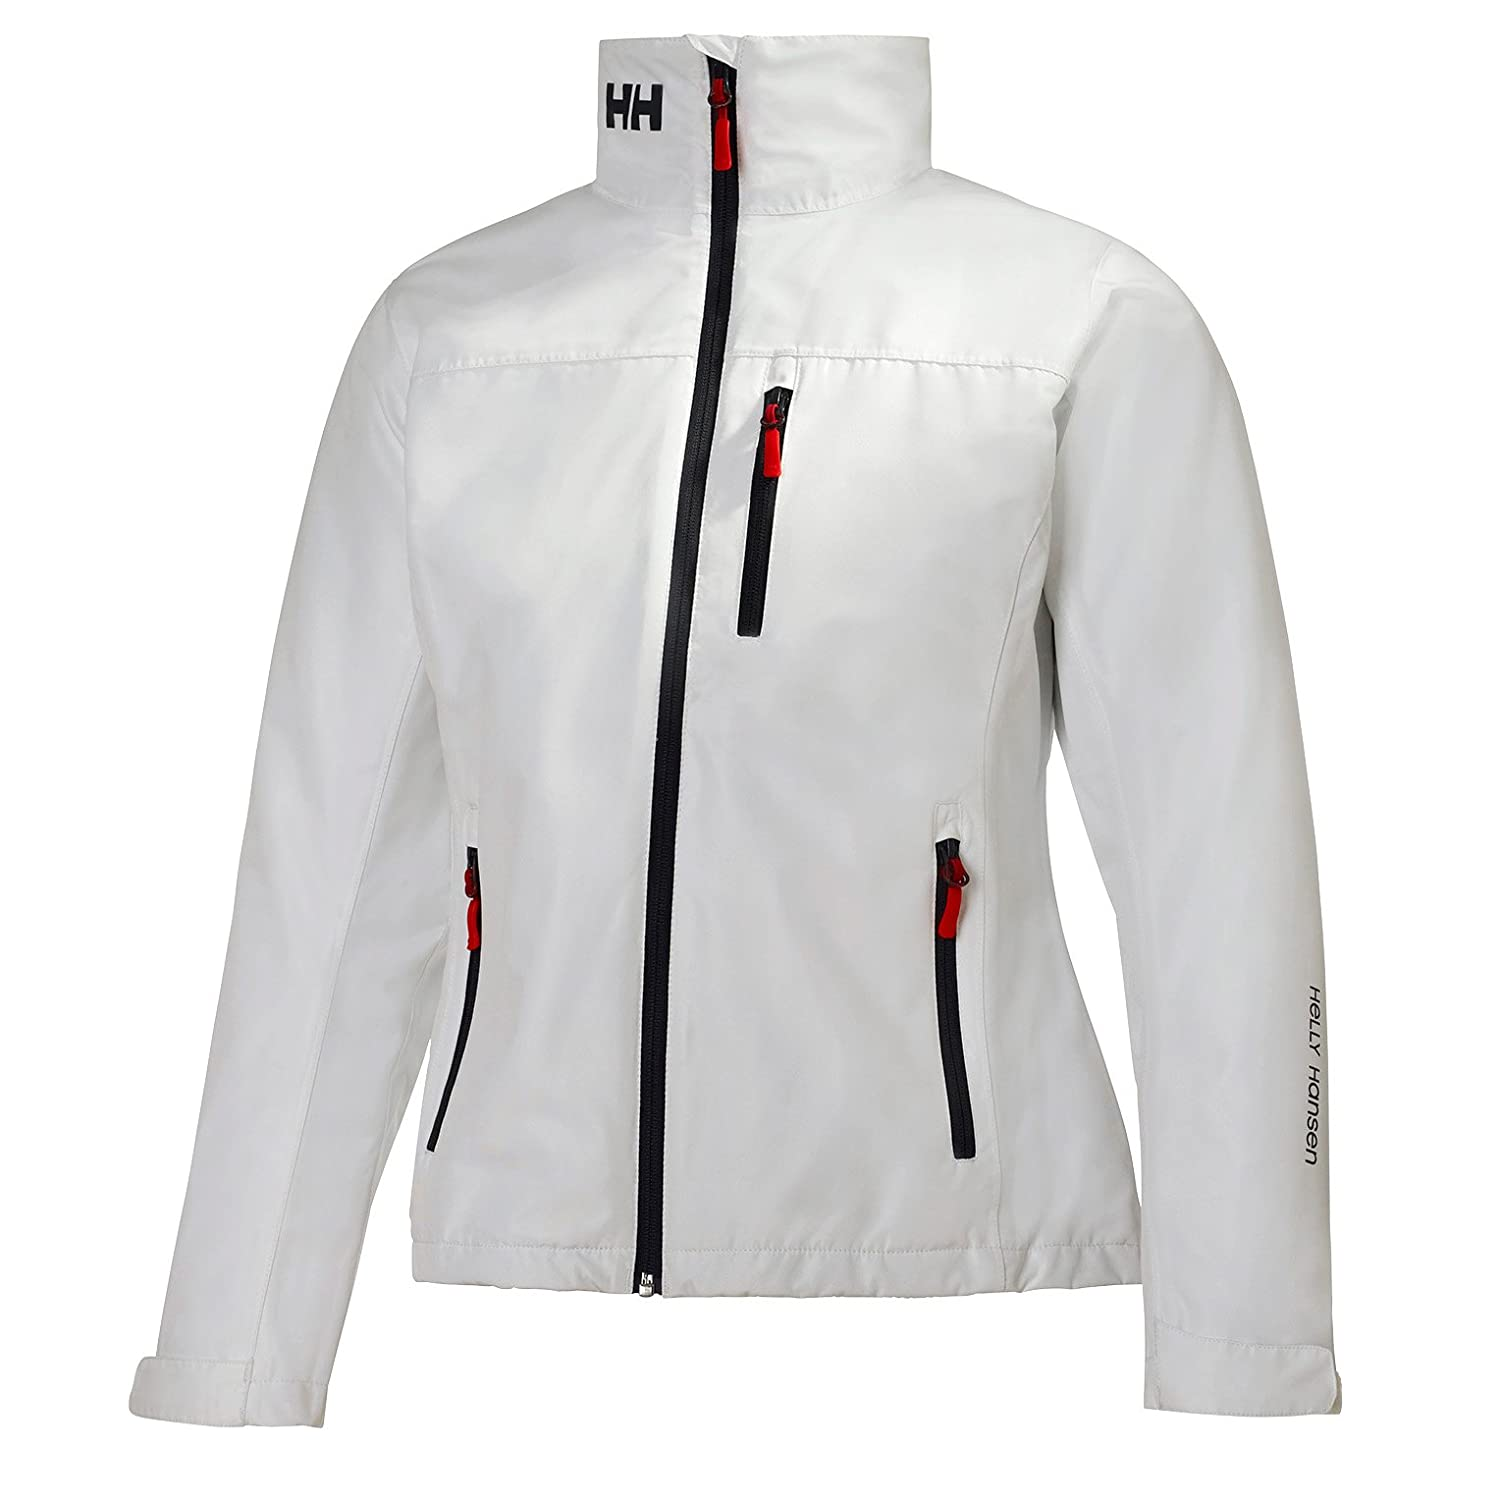 new arrival reliable quality 50-70%off Helly Hansen Women's Crew Mid Layer Jacket